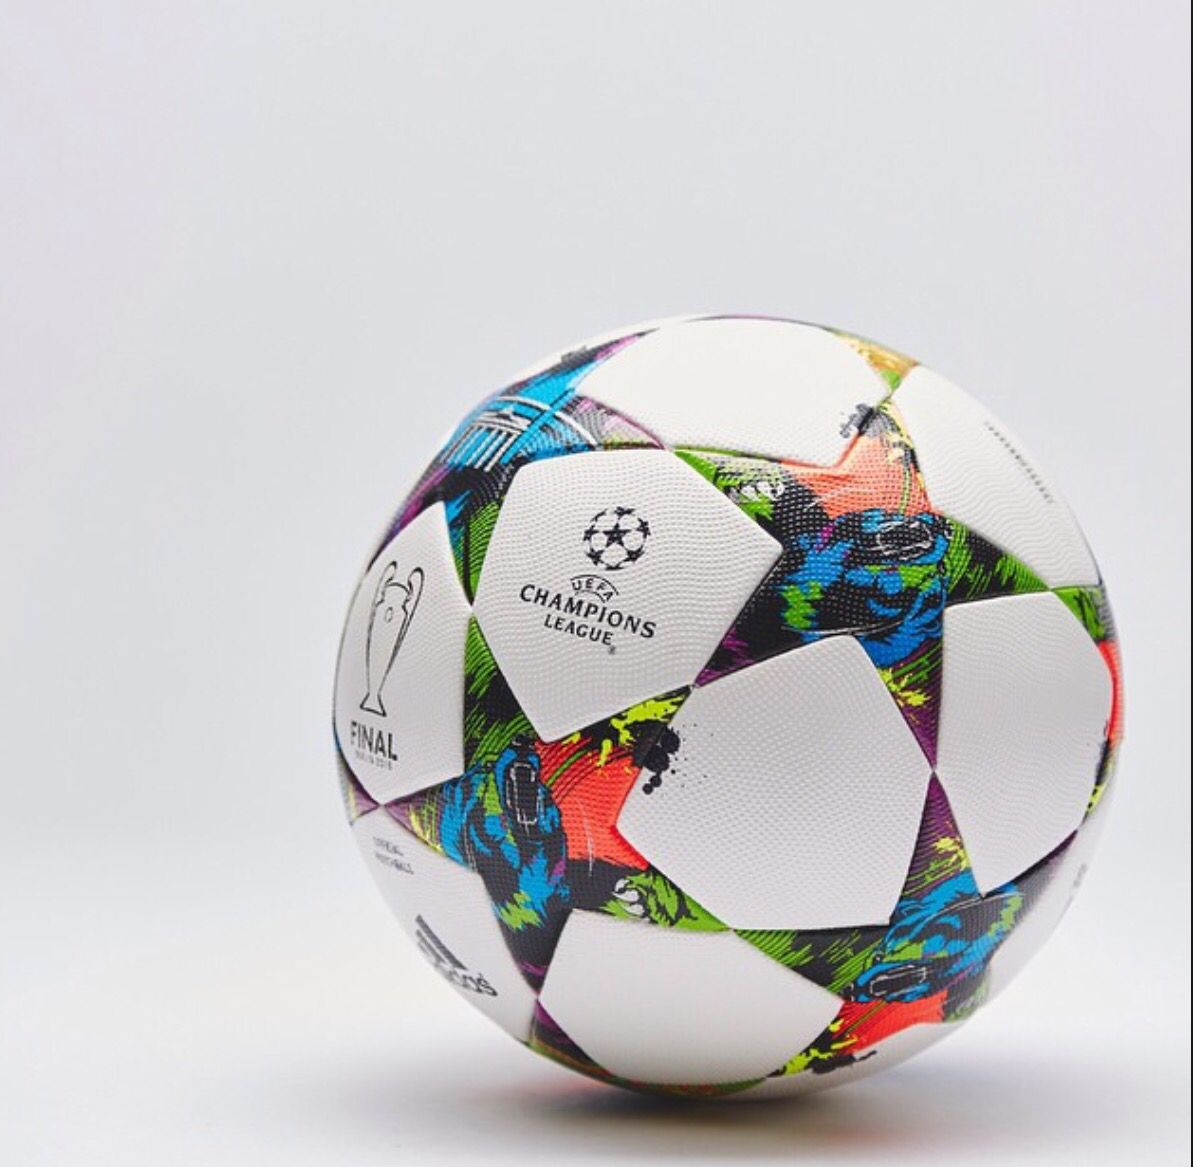 New Finale Champions League Ball